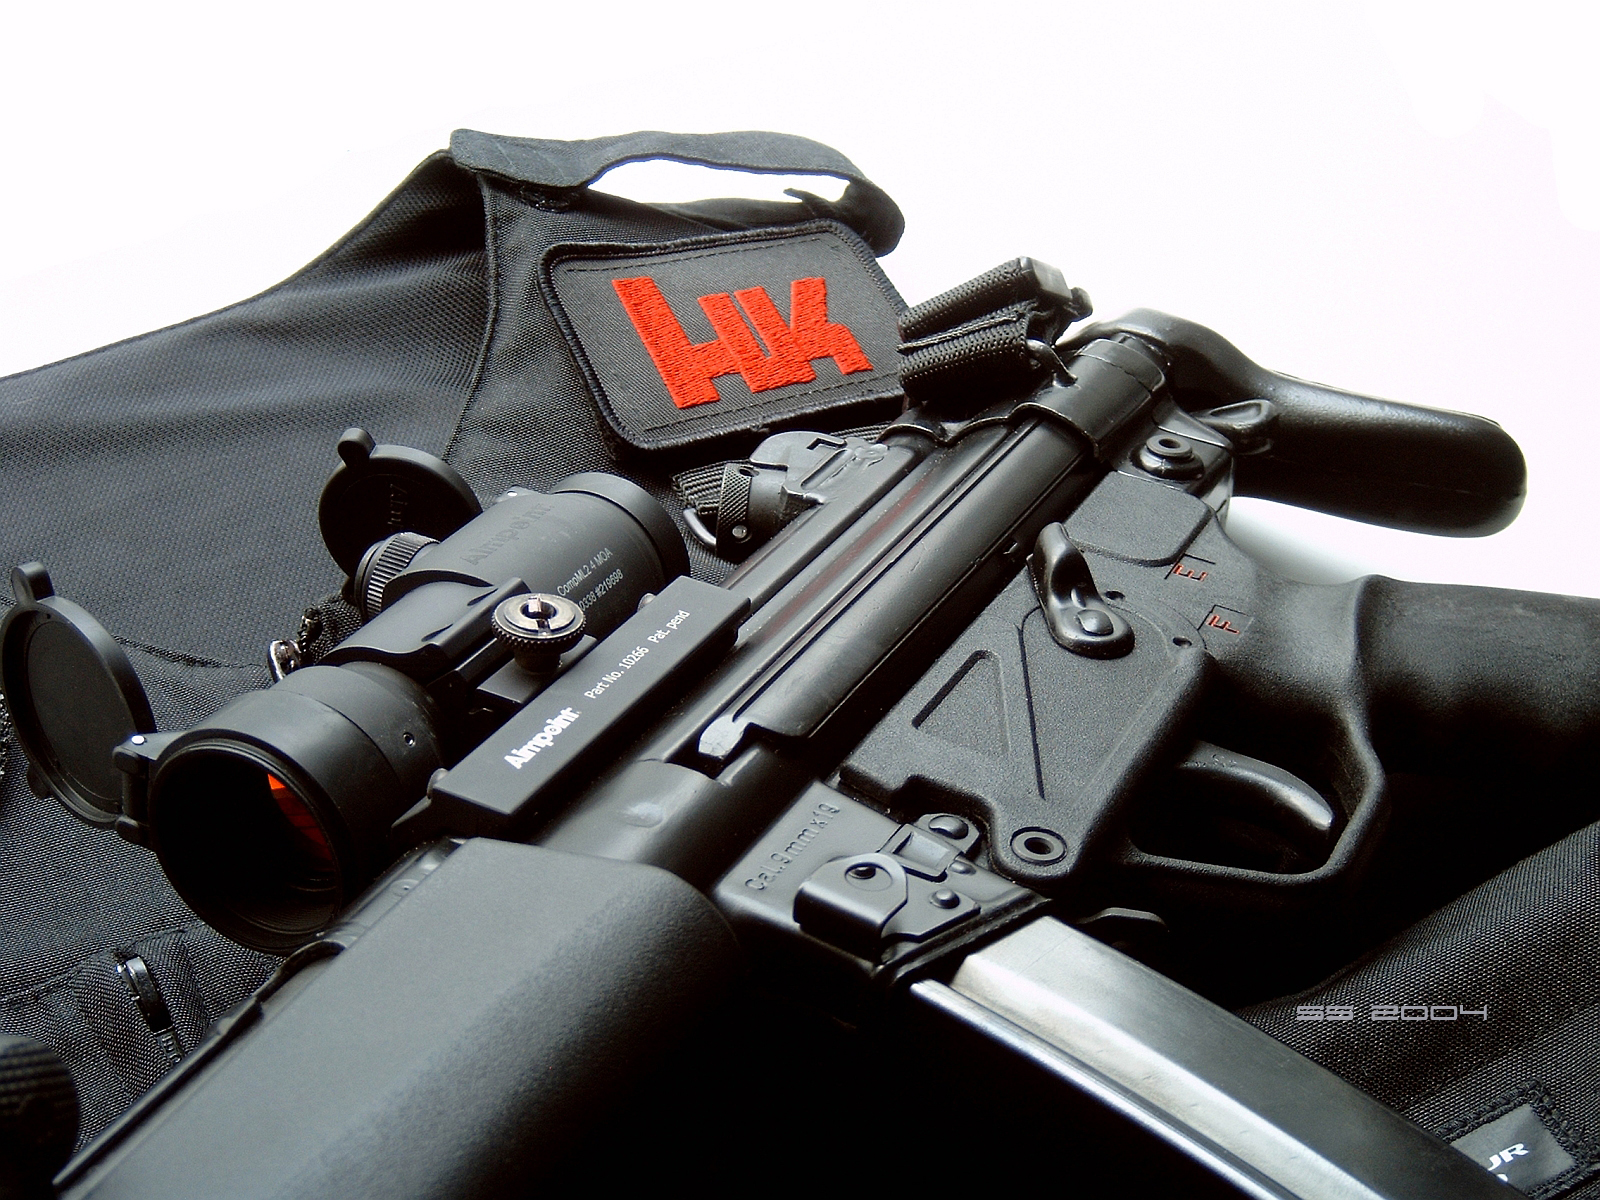 Heckler And Koch Wallpaper heckler and koch wallp...